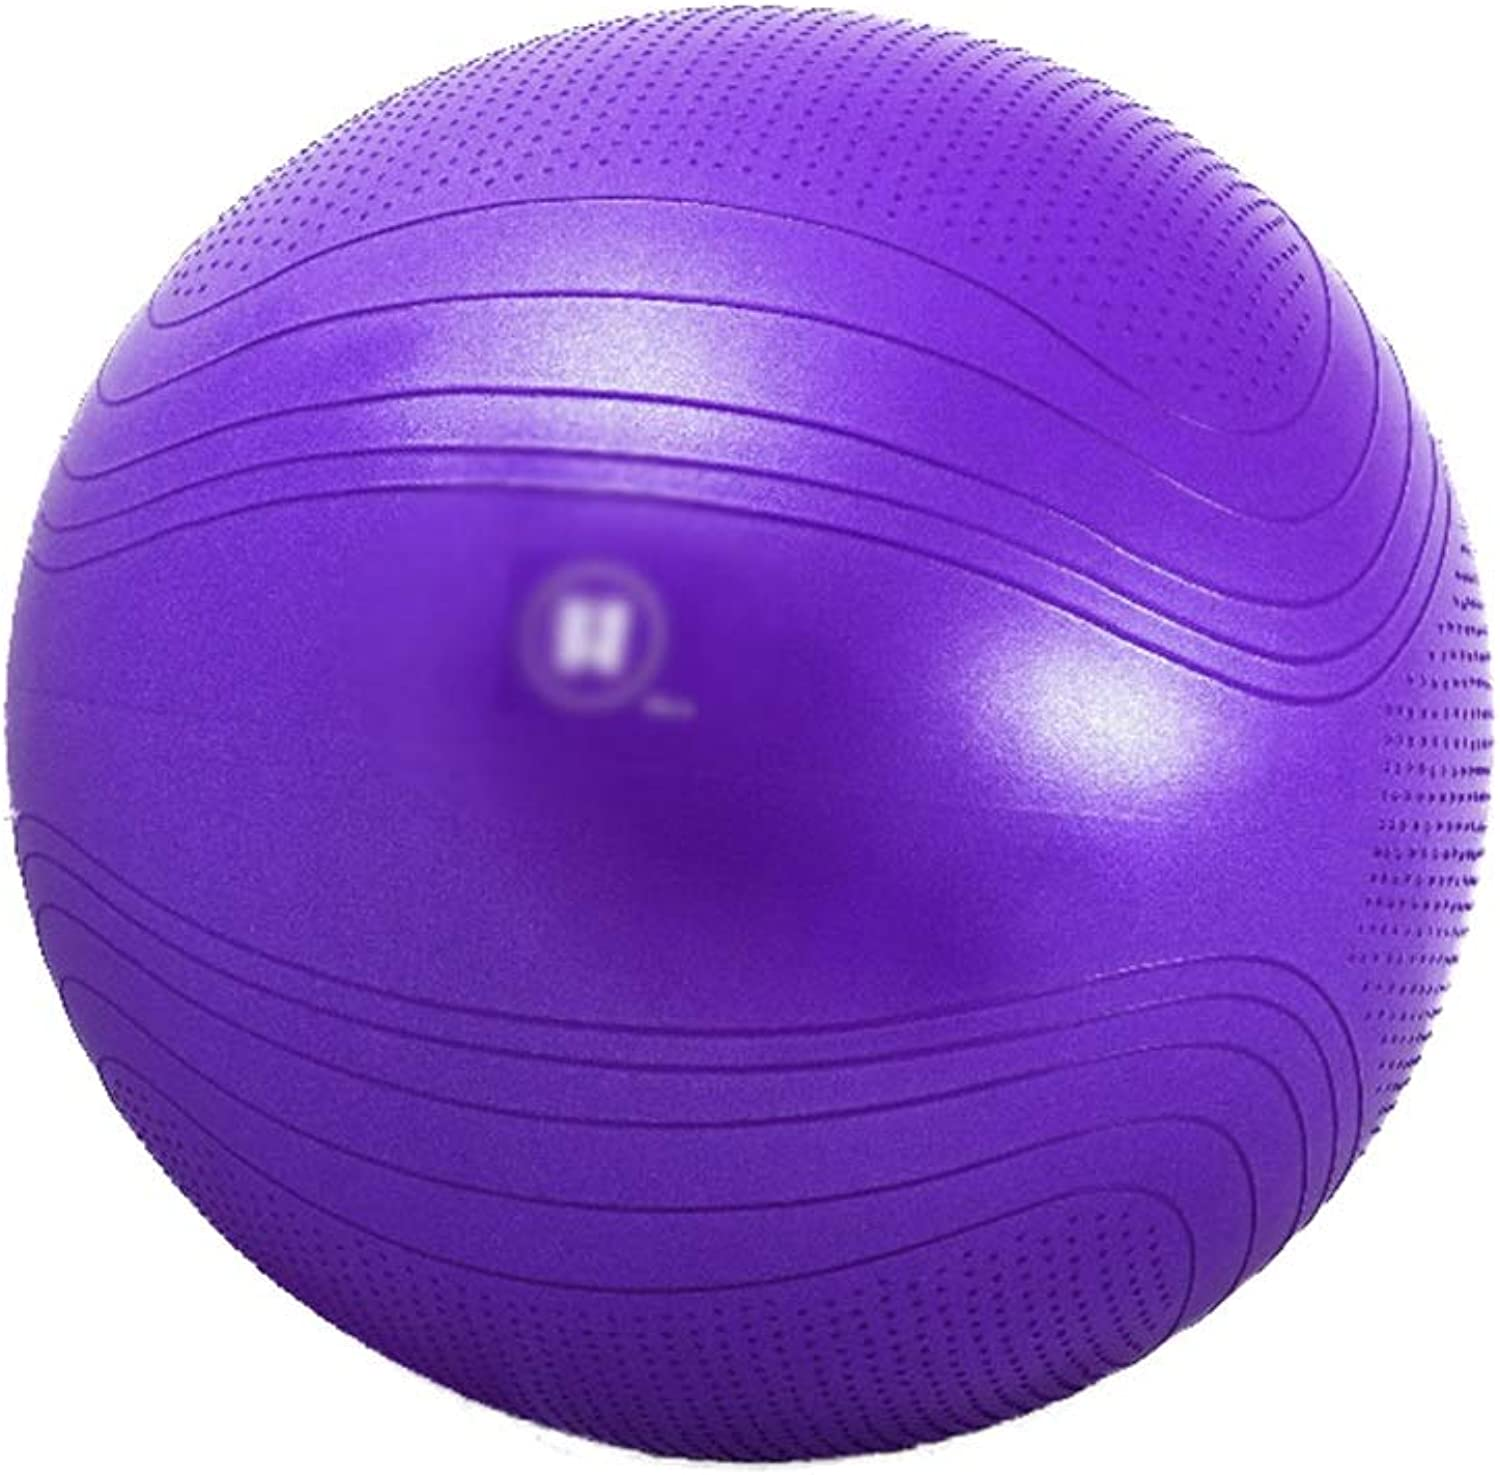 CJXin Beginner Yoga Ball, NonSlip Colourful Gym Ball Lose Weight Slimming Balance Ball Pregnant Woman Midwifery Ball 5575CM Indoor Fitness Equipment